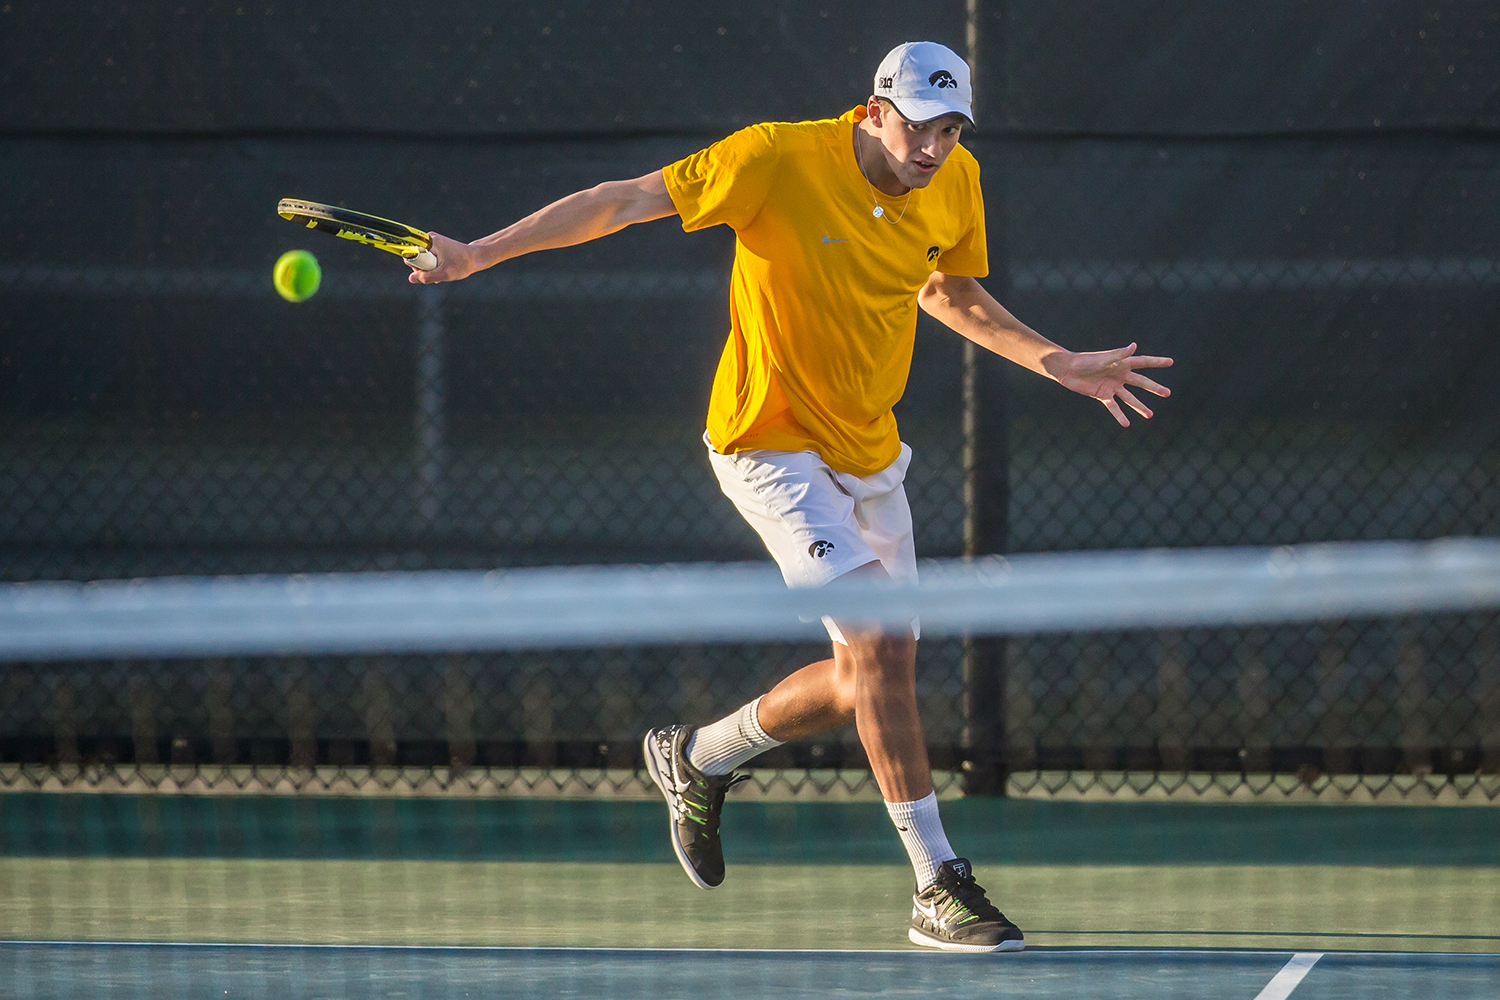 Iowa's Joe Tyler hits a backhand during a men's tennis match between Iowa and Michigan State at the Hawkeye Tennis Recreation Complex  on Friday, April 19, 2019. The Hawkeyes defeated the Spartans, 5-2. (Shivansh Ahuja/The Daily Iowan)